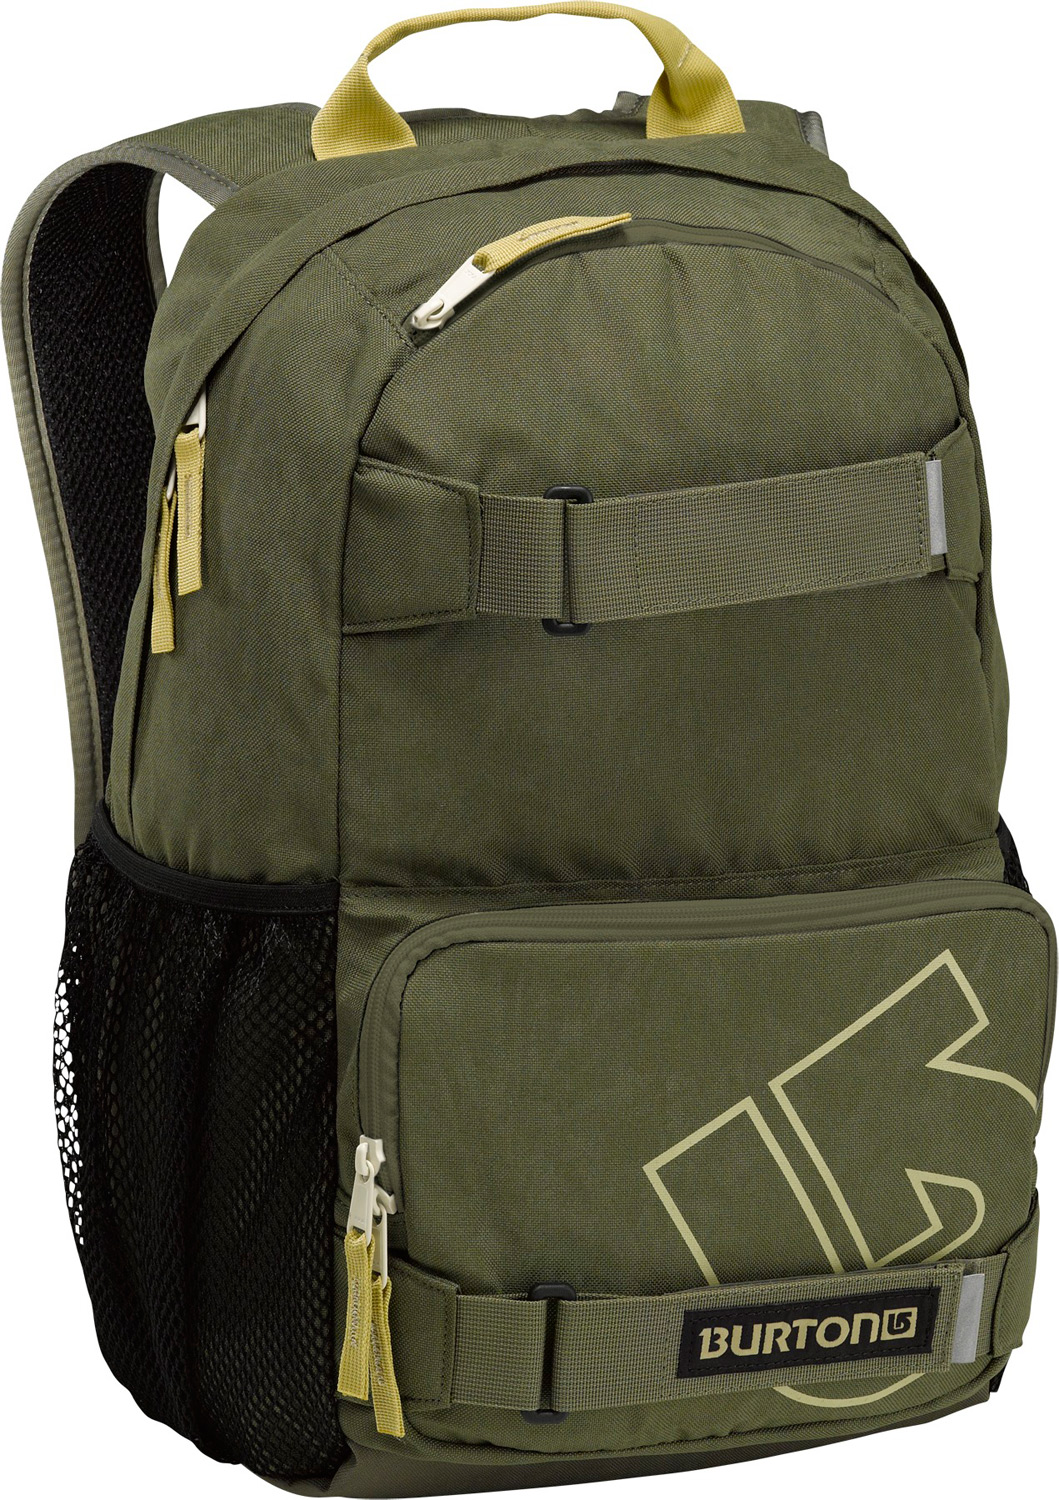 Snowboard Key Features of the Burton Treble Yell Backpack: Volume: 21L Weight: 1.5 lbs./0.7kg Dimensions: 18.5x12x7 in/47x31x17 cm Fabrication: 300D Polyester Dobby/600D Polyester Cush Ergonomic Shoulder Harness Vertical Skate Carry Magazine/Laptop Sleeve Mesh Water Bottle Pockets - $27.95